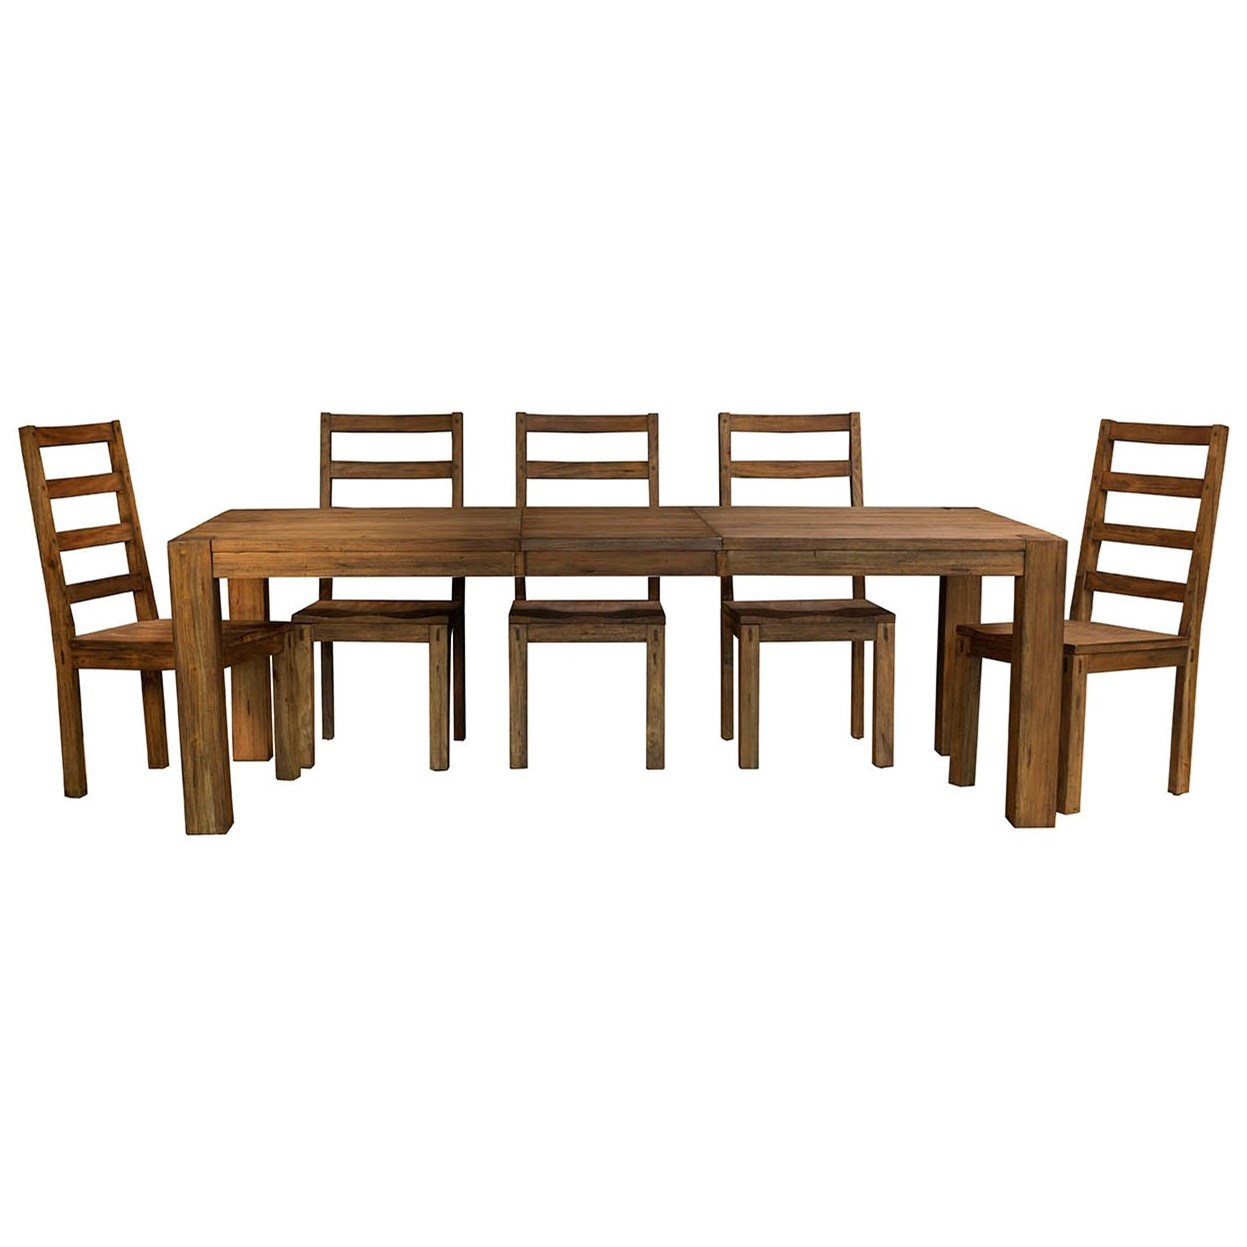 AAmerica Anacortes 6 Piece Dining Set - Item Number: ANA-SM-6-34-0+5xANA-SM-2-55-K